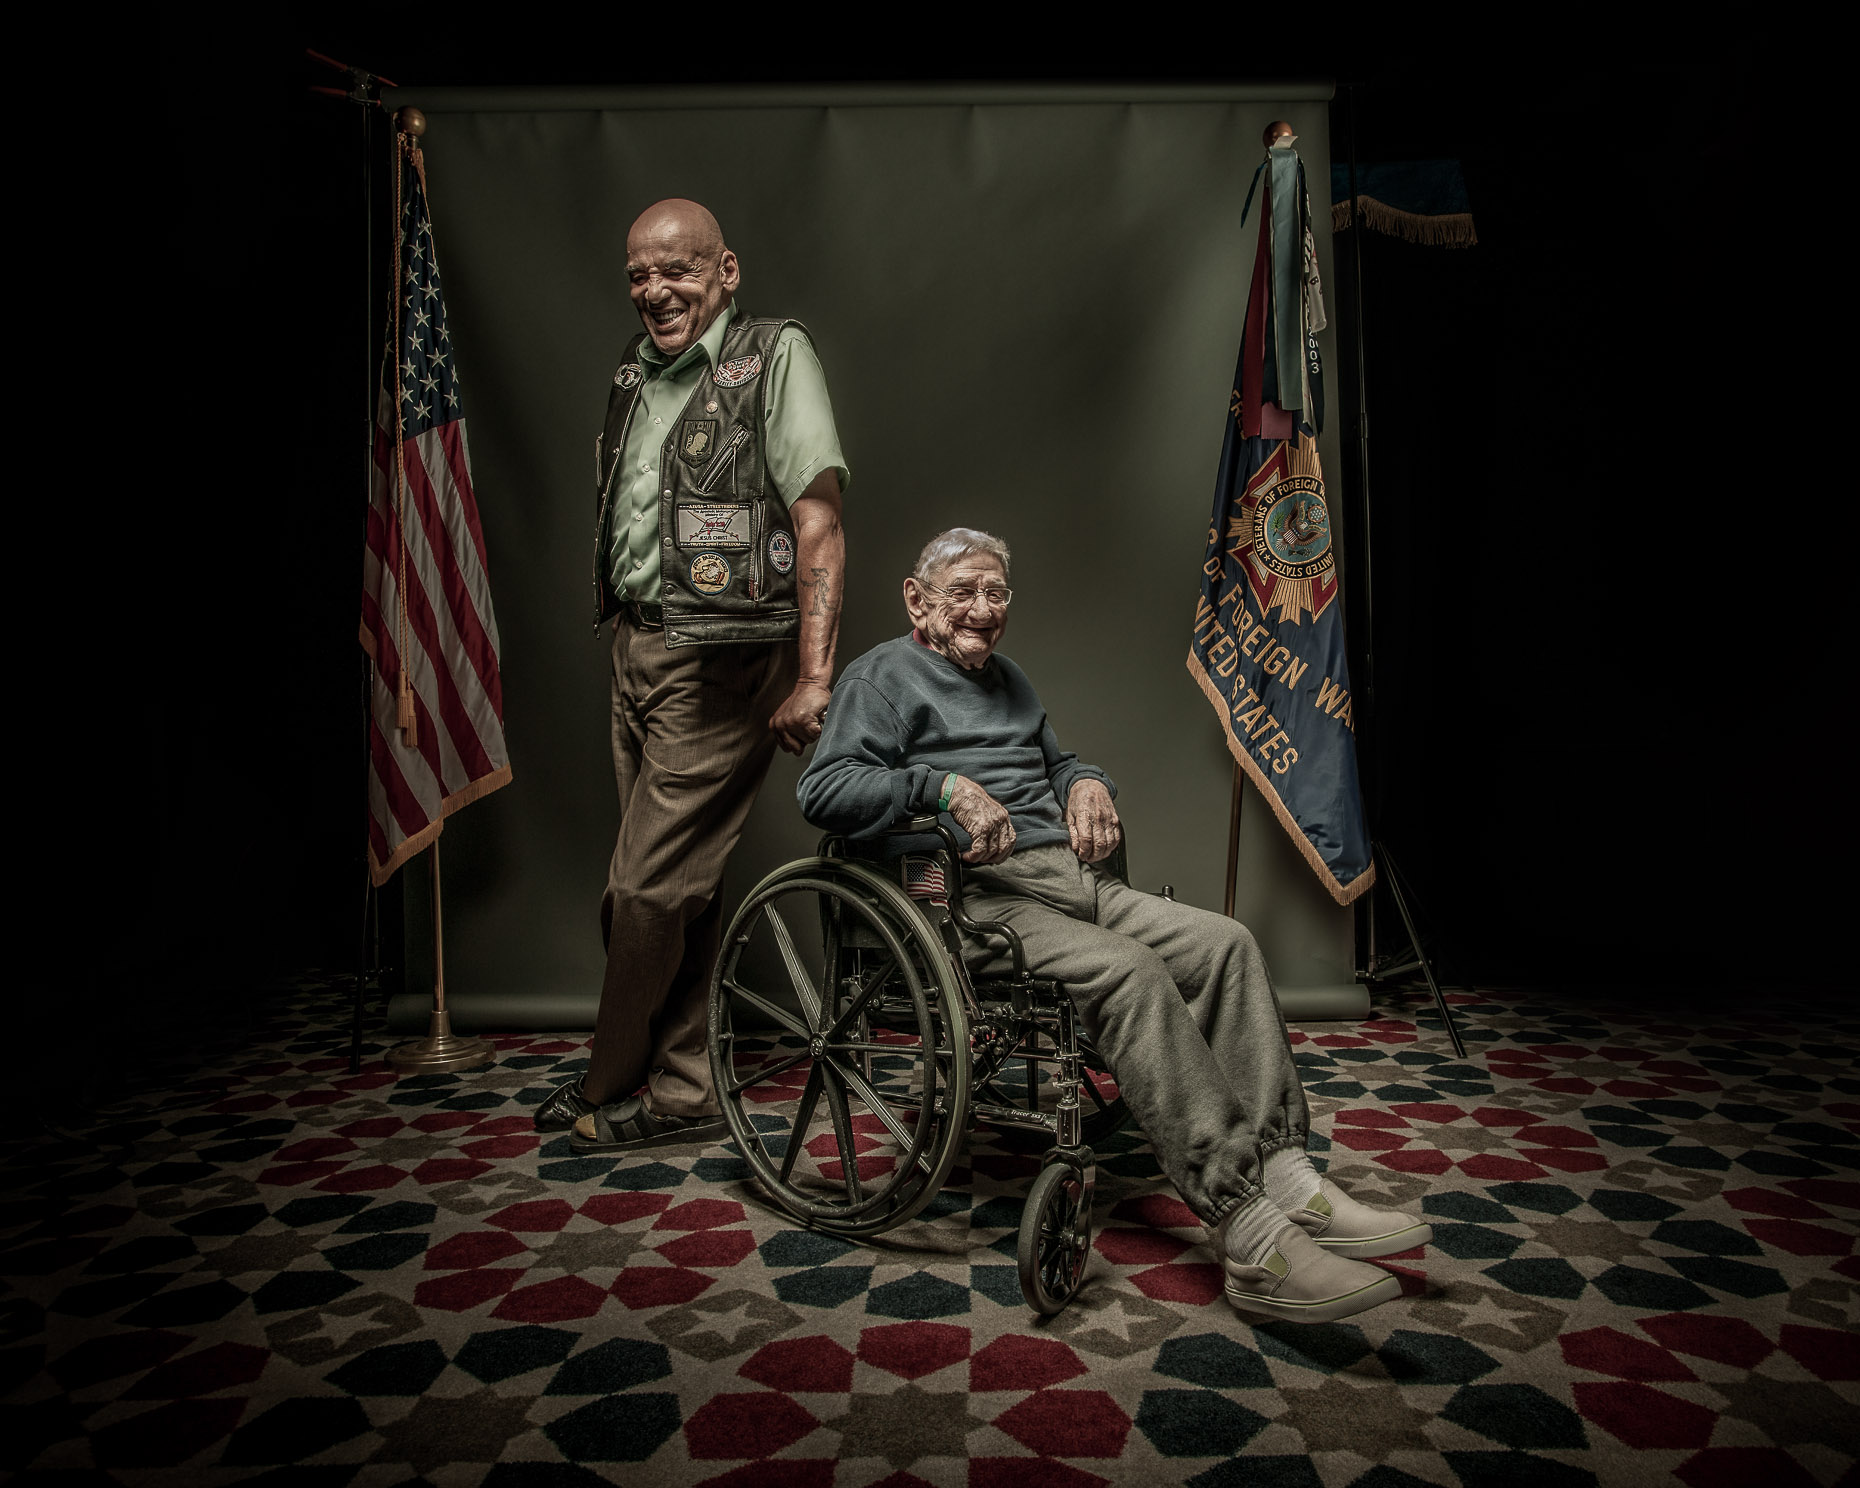 Raymond Wynder Jr. and William Nixon | Vineland Veterans Memorial Home | NJ Veterans Affairs